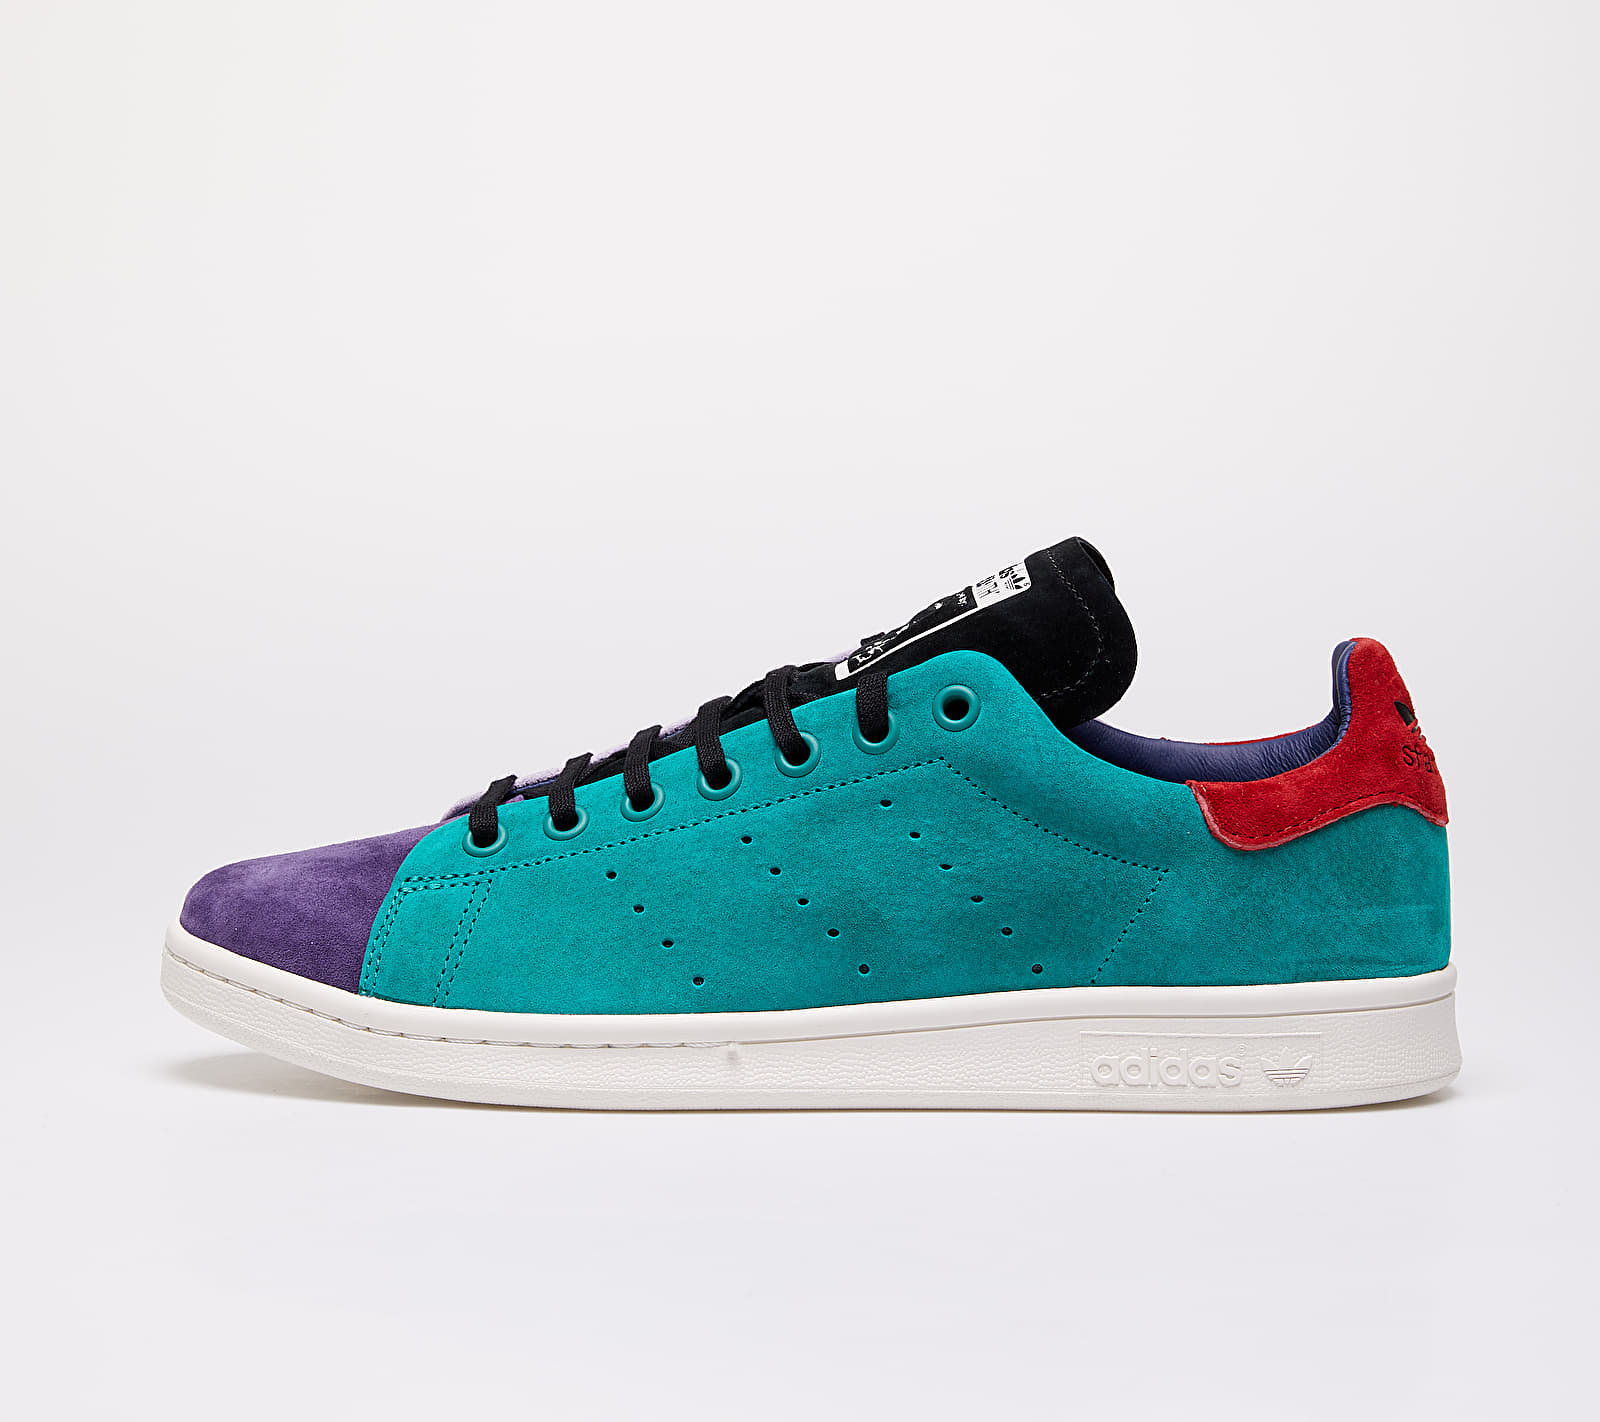 adidas Stan Smith Recon Vapor Pink/ Tactile Steel/ Lust Blue EF4974